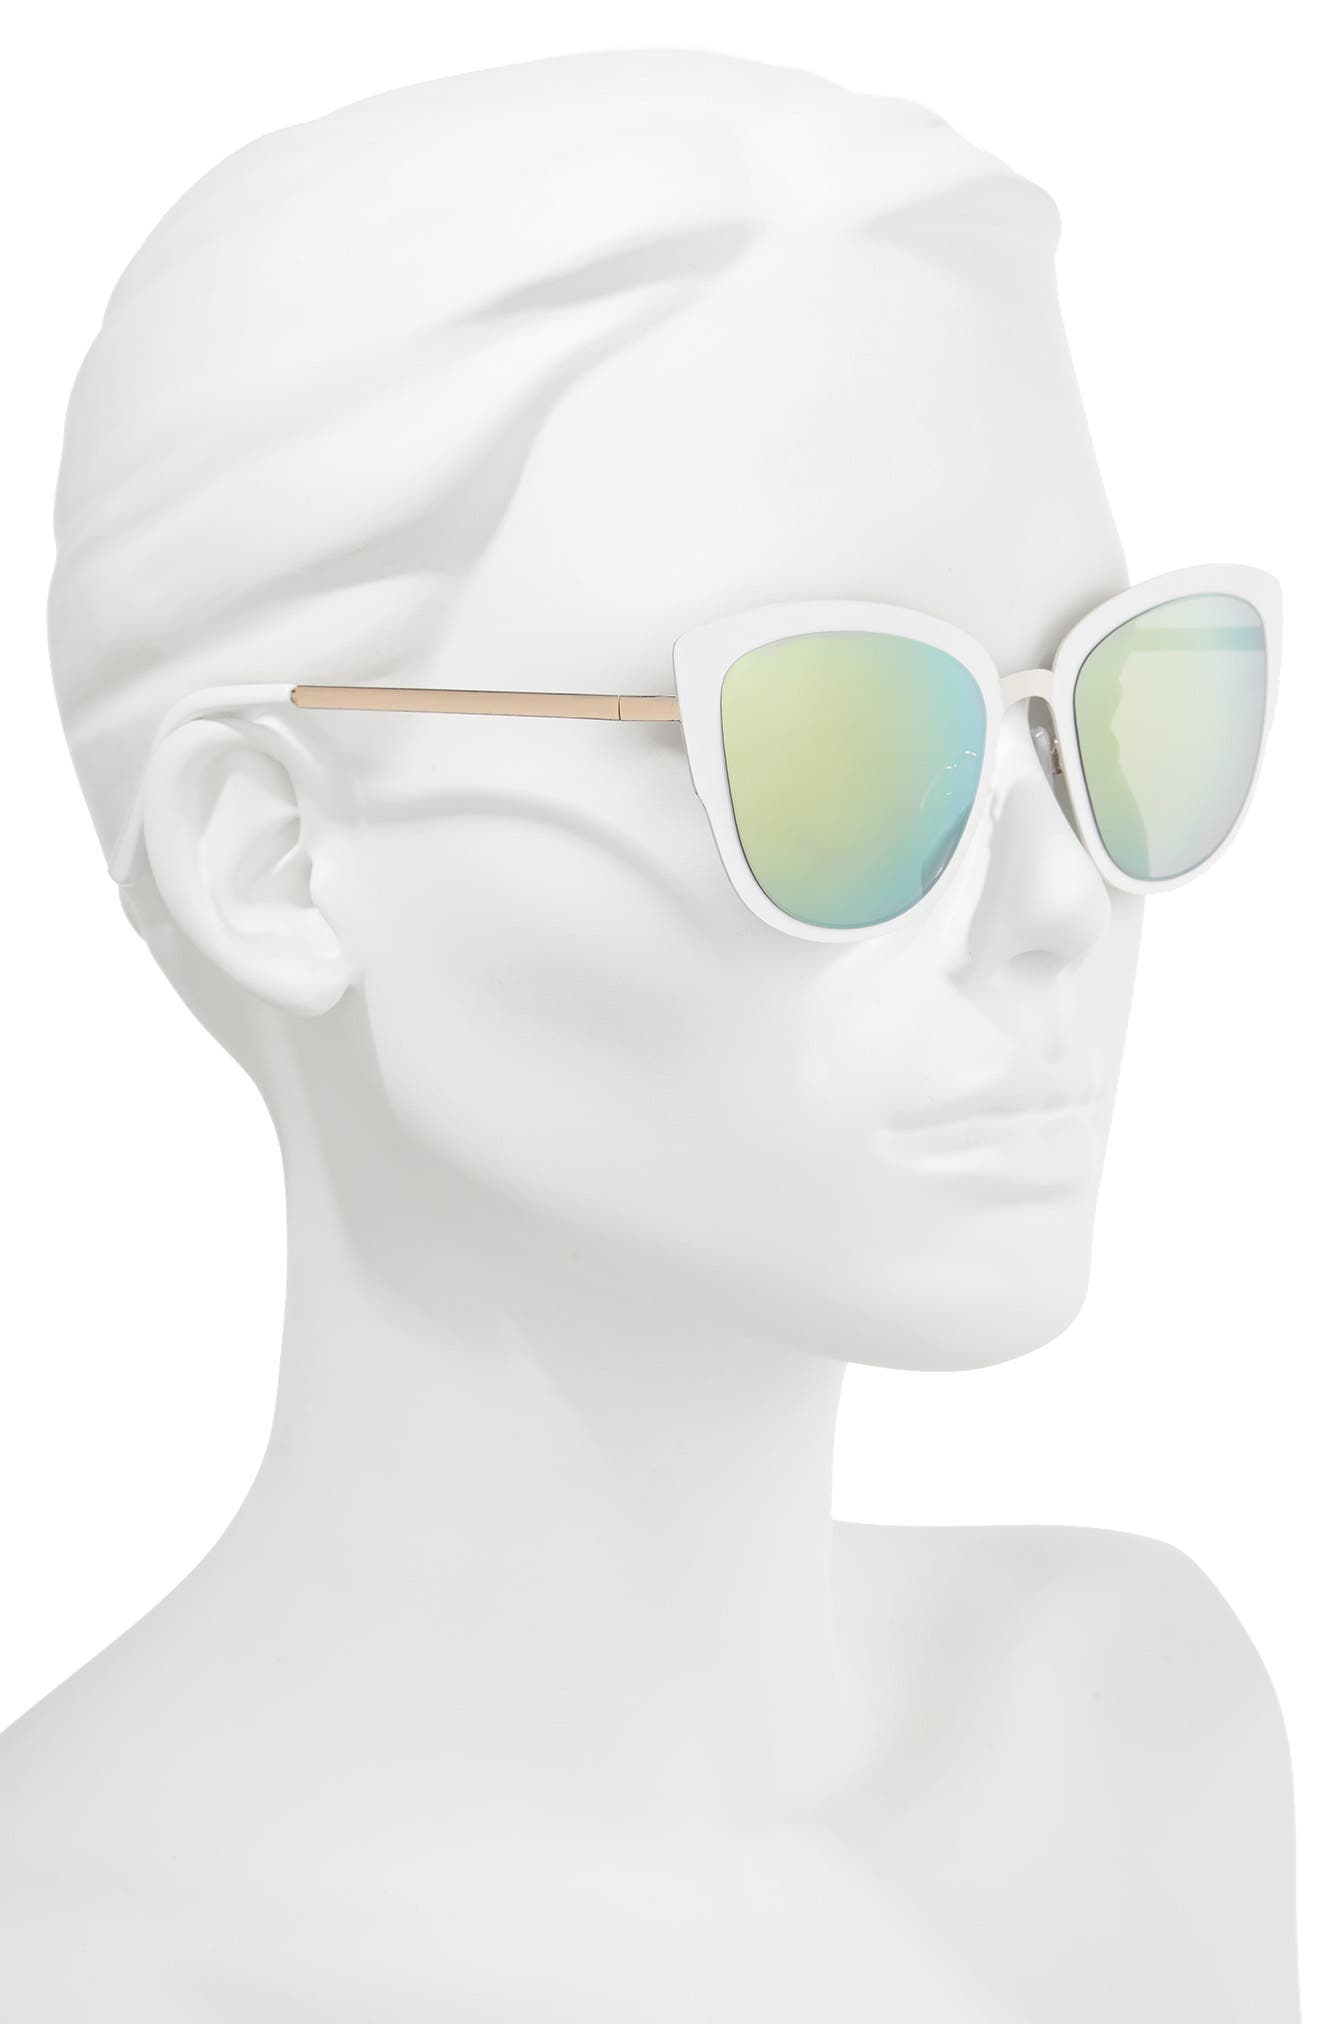 59mm Cat Eye Sunglasses,                             Alternate thumbnail 2, color,                             GOLD/ WHITE